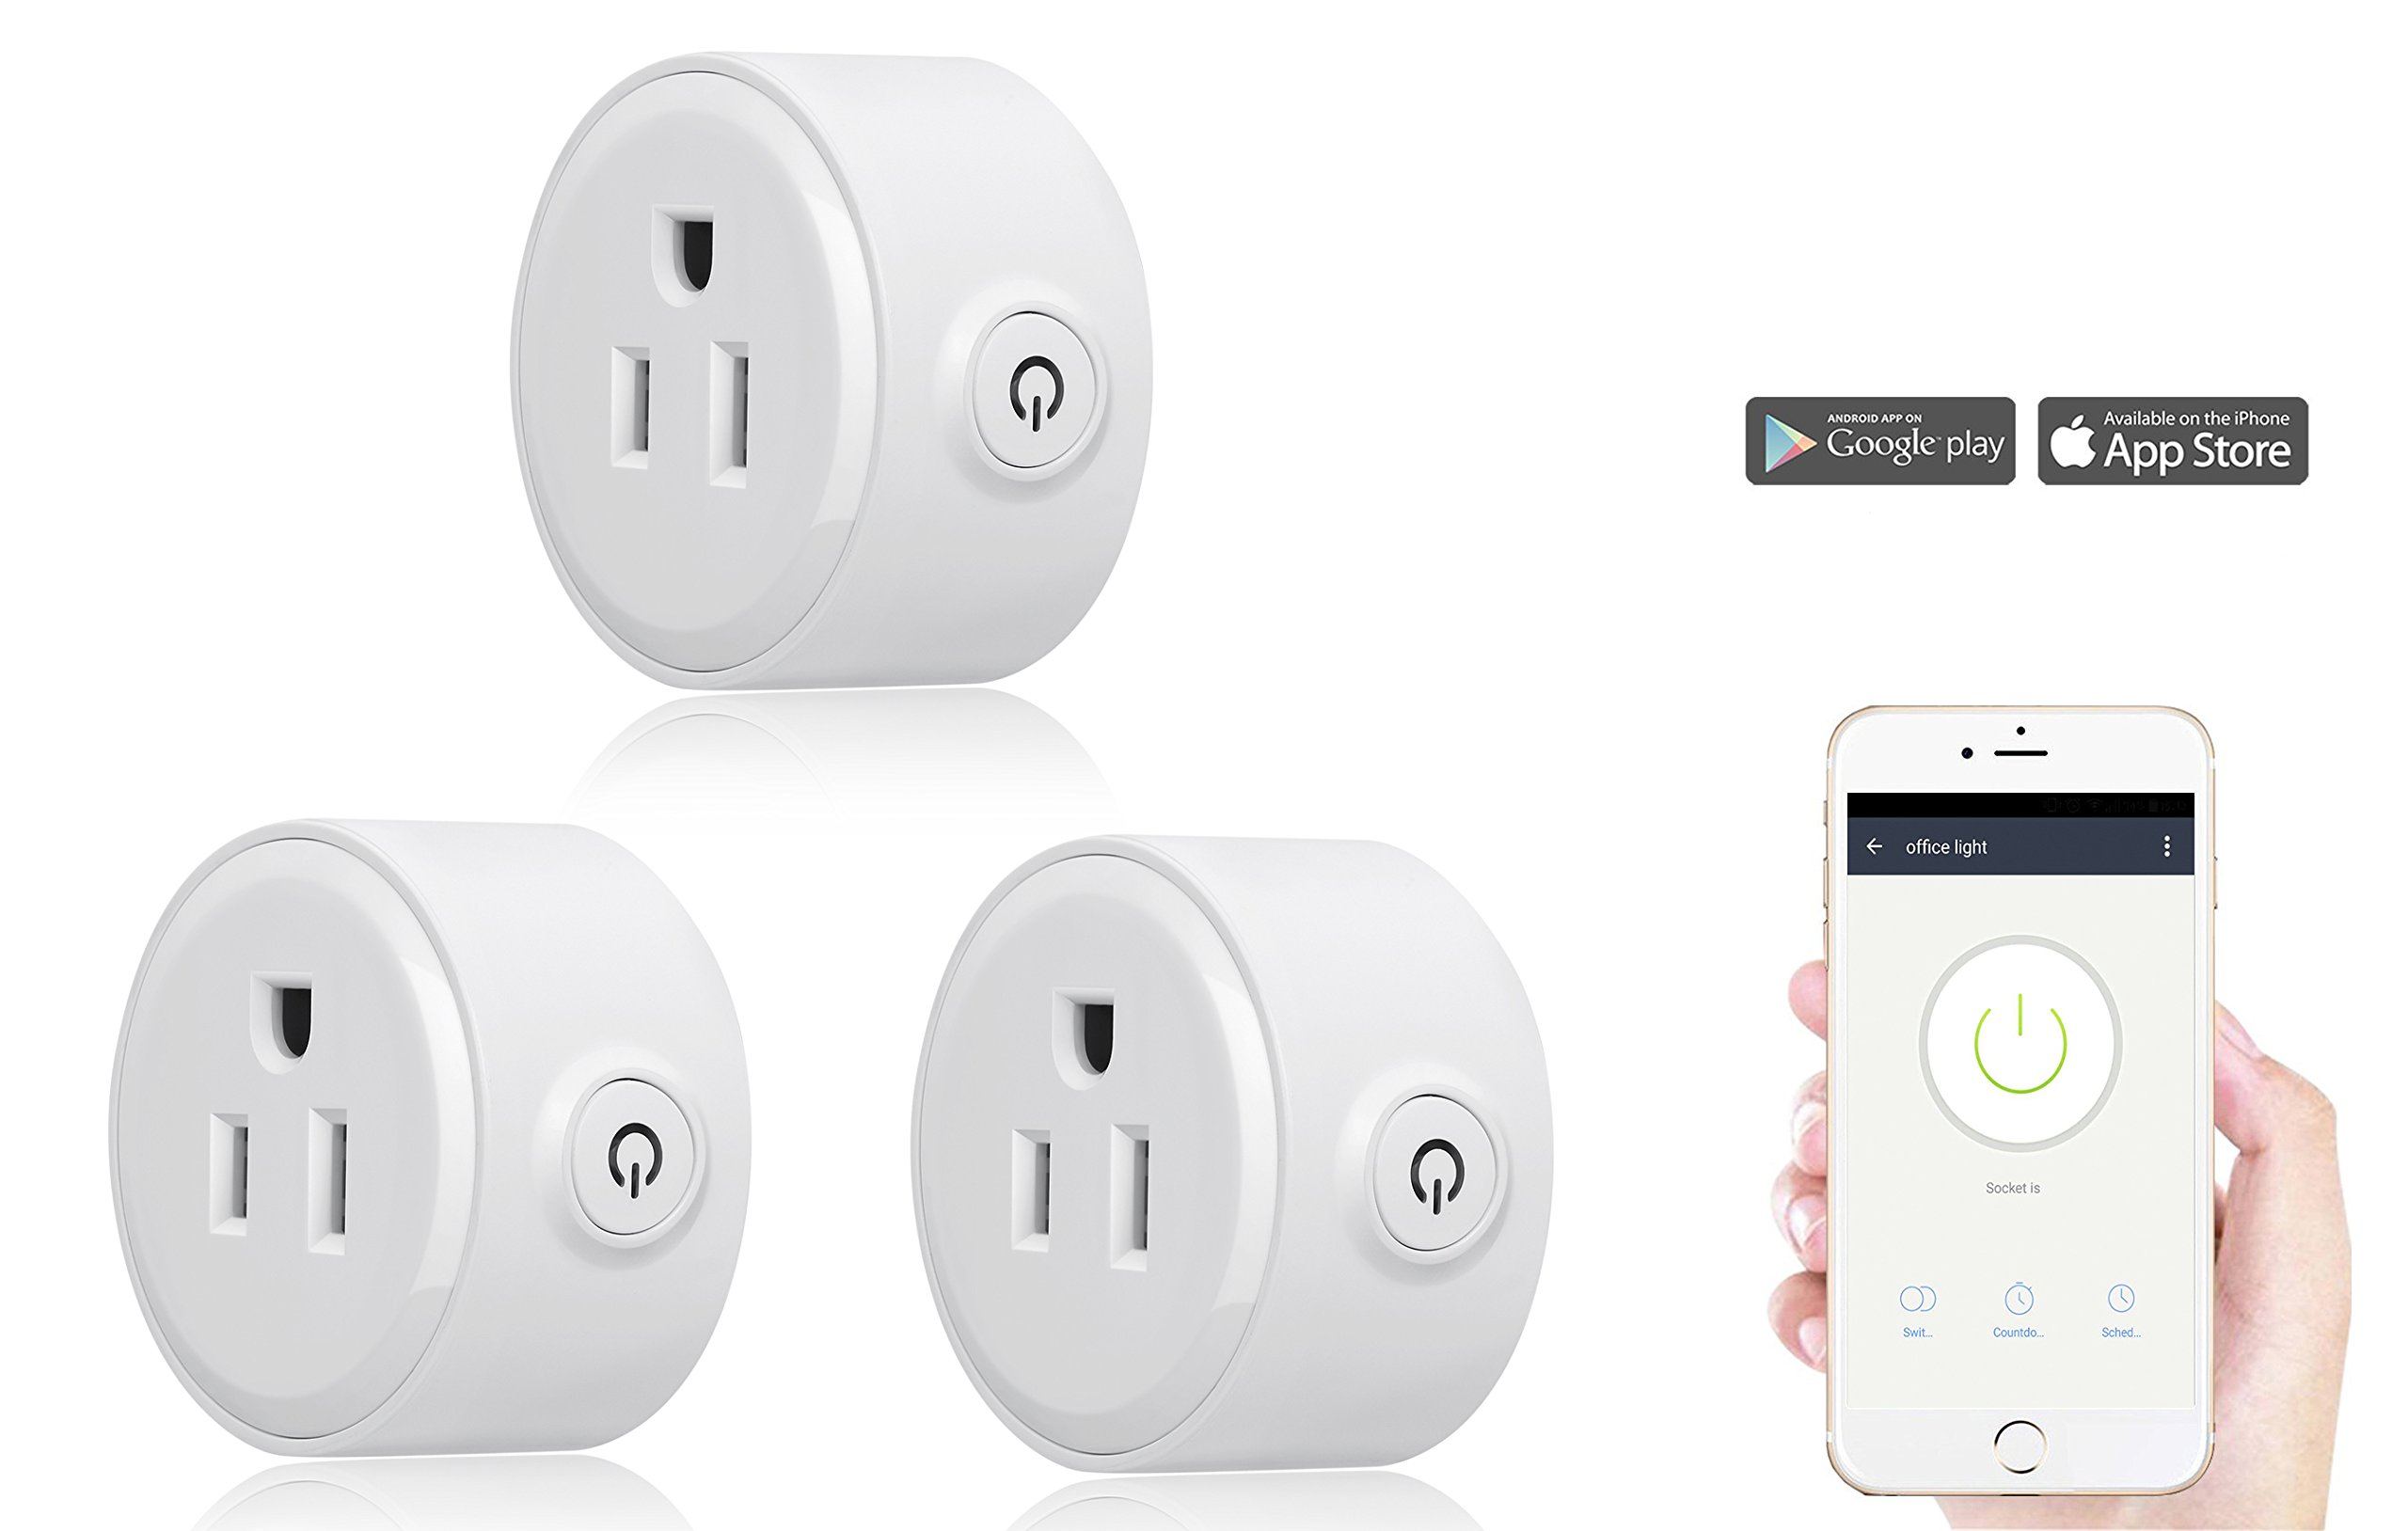 Smart Home Mini Smart Plug by Wasserstein Compatible with Alexa, Wi-fi control all your Devices Wherever you are; No expensive hub required, Simple Plug & Play Socket (3 Pack)